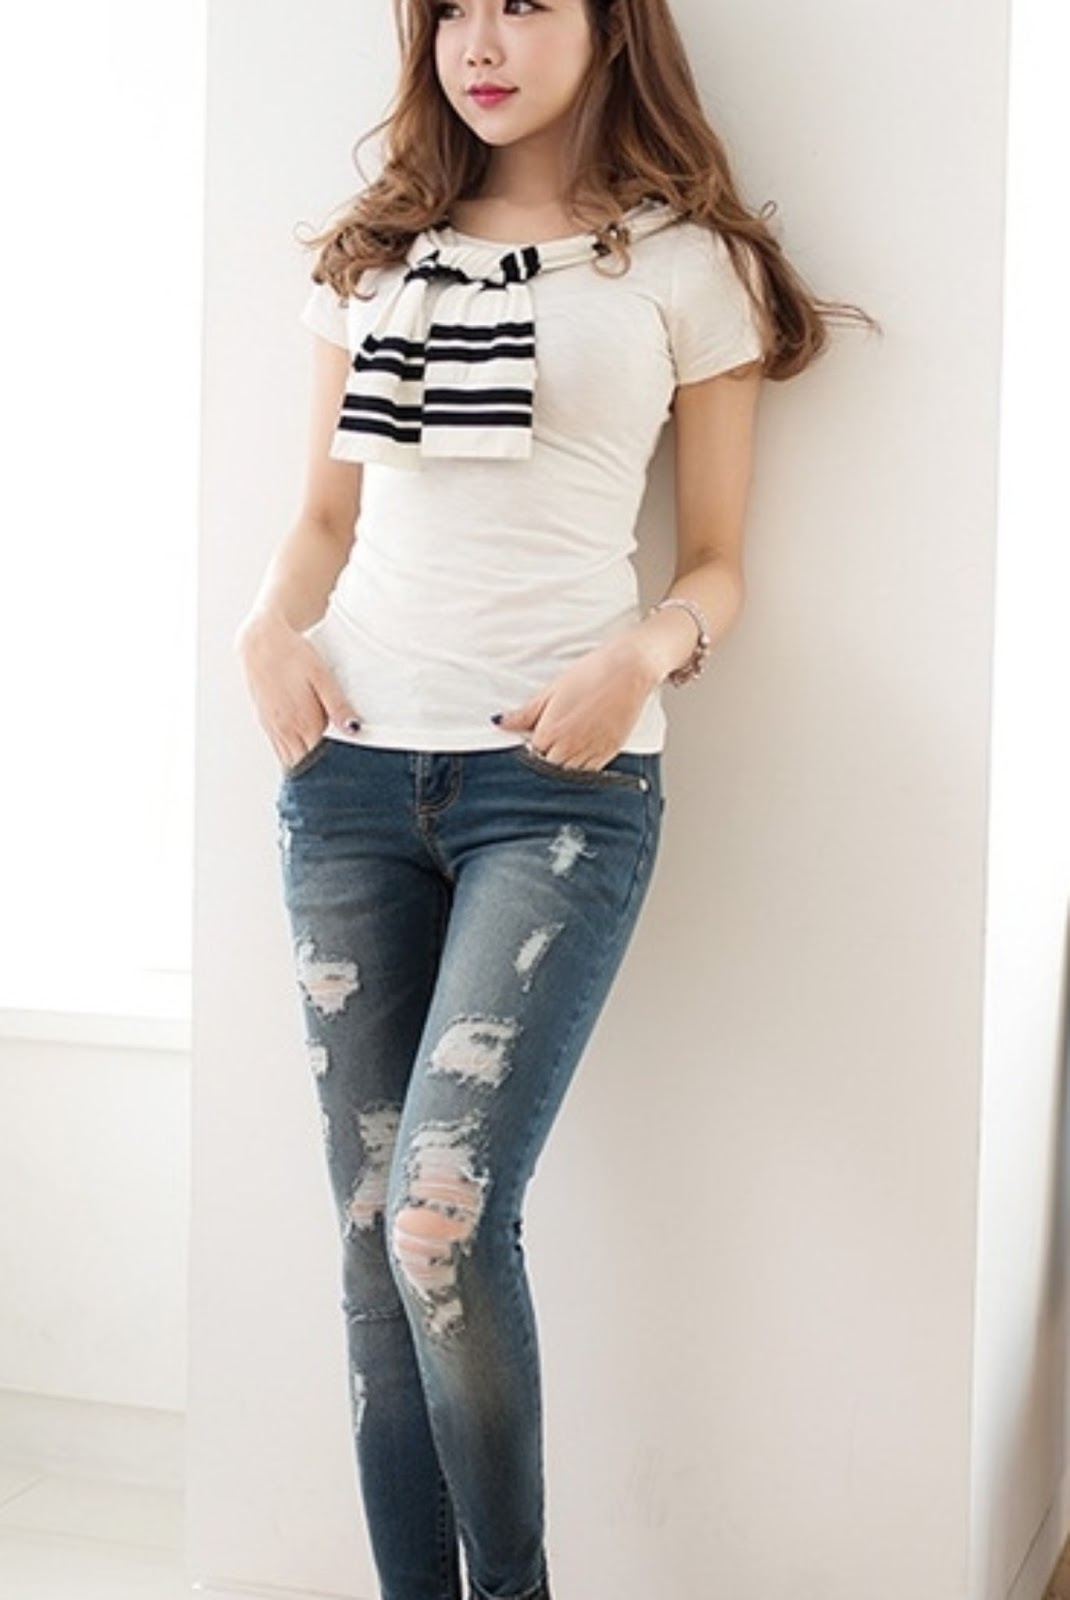 Entertainment Skinny Jeans For Teenage Girl